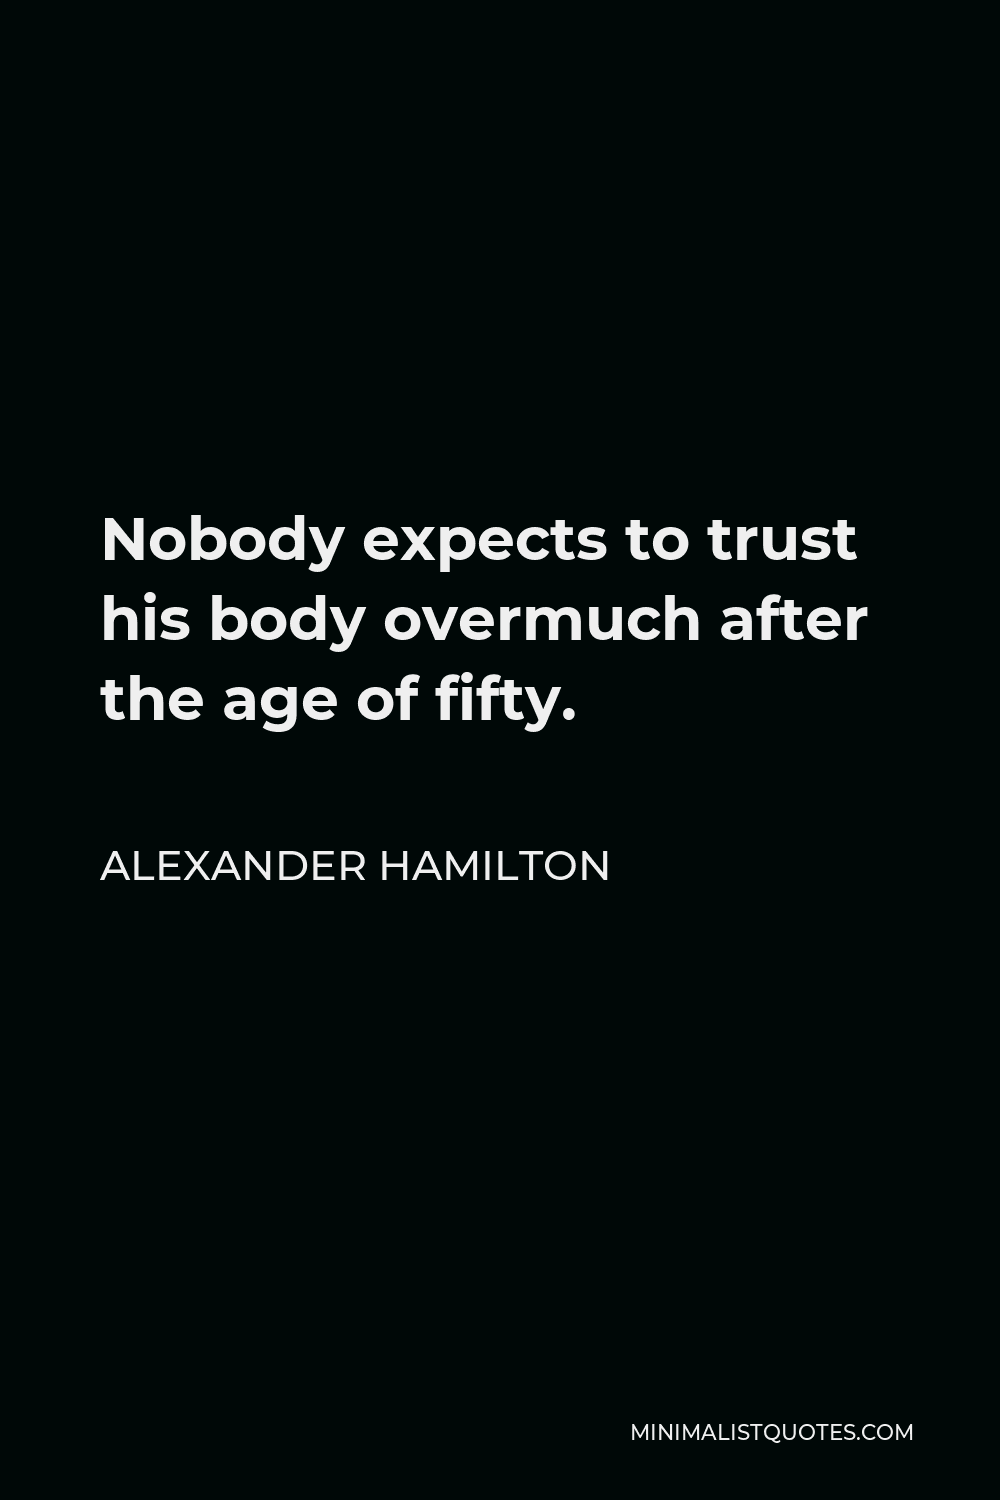 Alexander Hamilton Quote - Nobody expects to trust his body overmuch after the age of fifty.